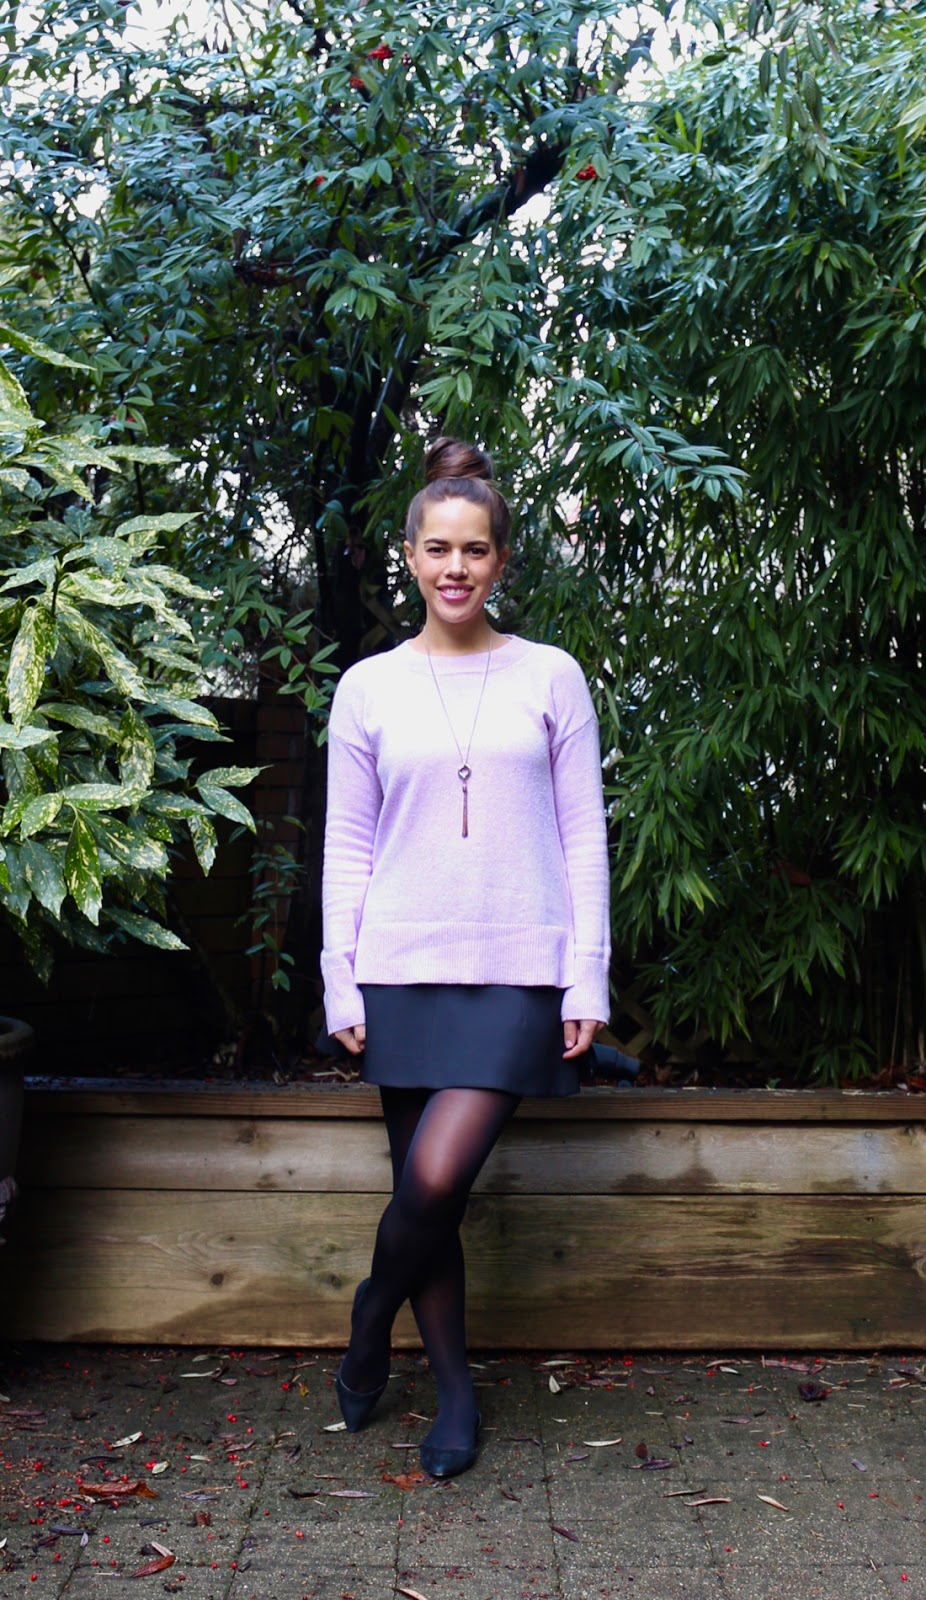 Jules in Flats - Lilac Crew Neck Sweater Tunic with Mini Skirt (Business Casual Winter Workwear on a Budget)